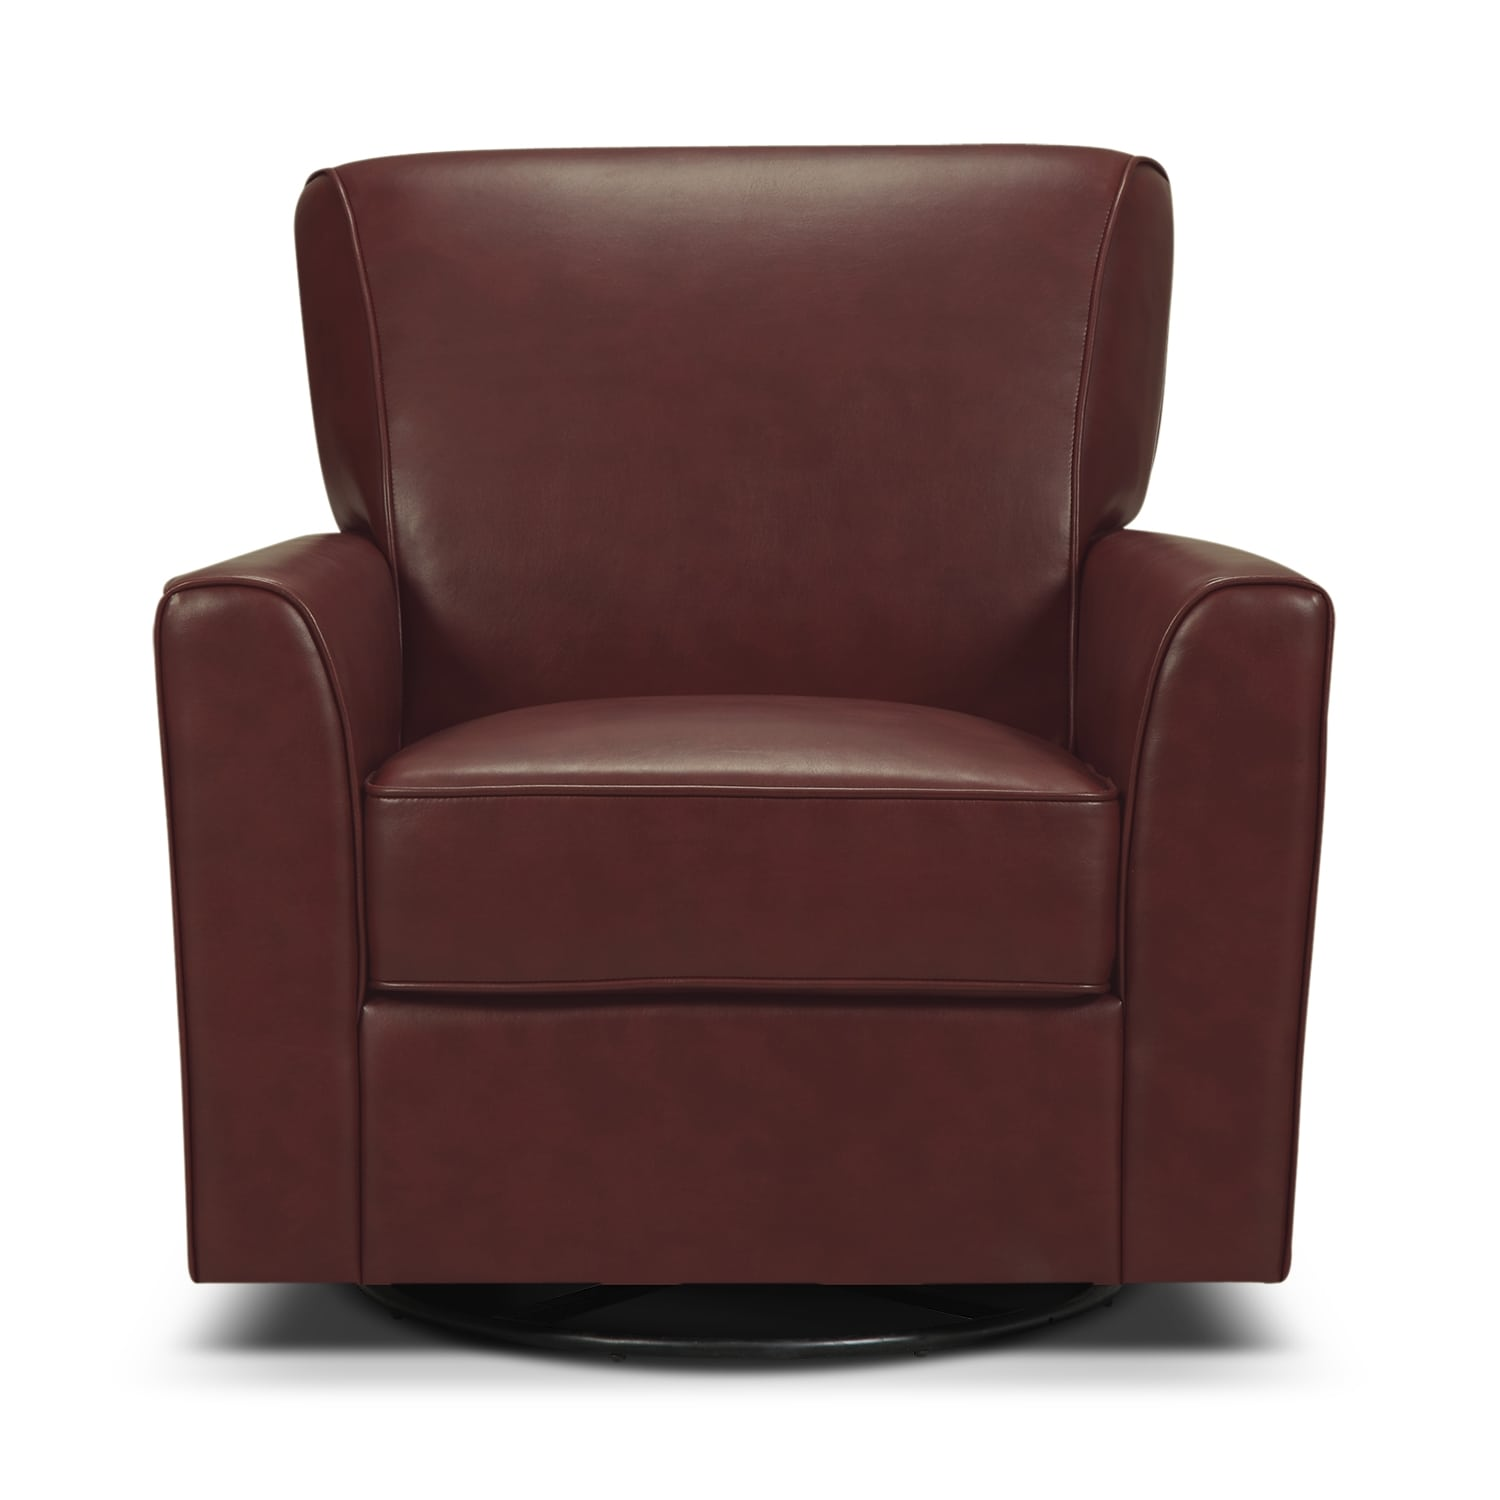 Pinnacle Motion Swivel Glider Value City Furniture